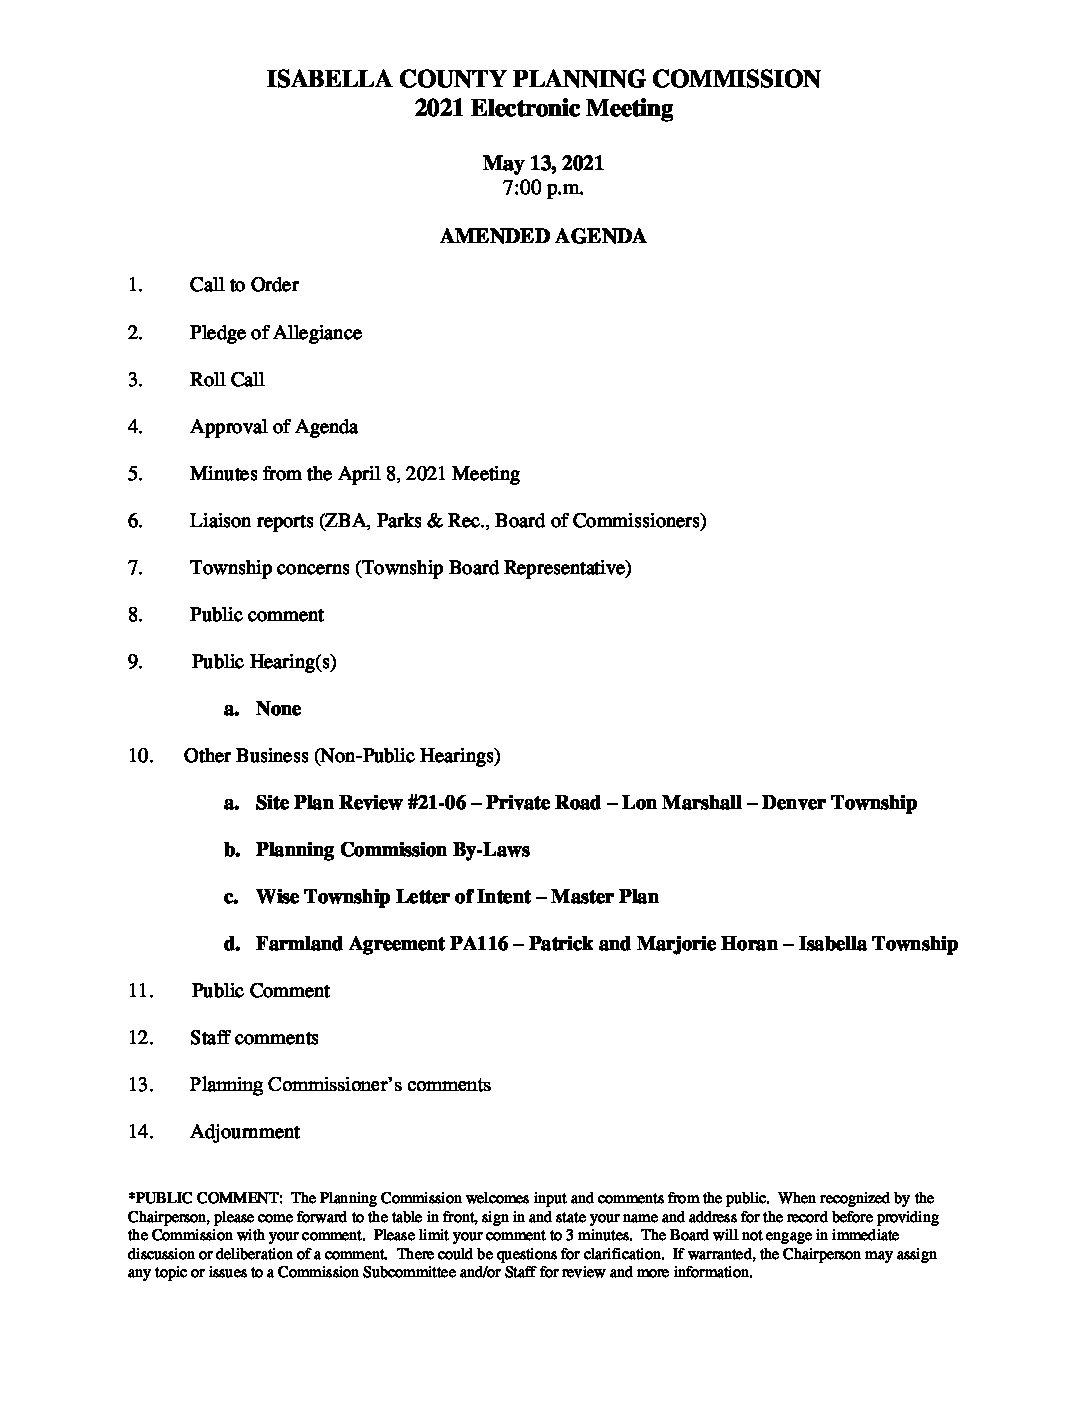 preview image of first page May 13, 2021 – Amended Agenda